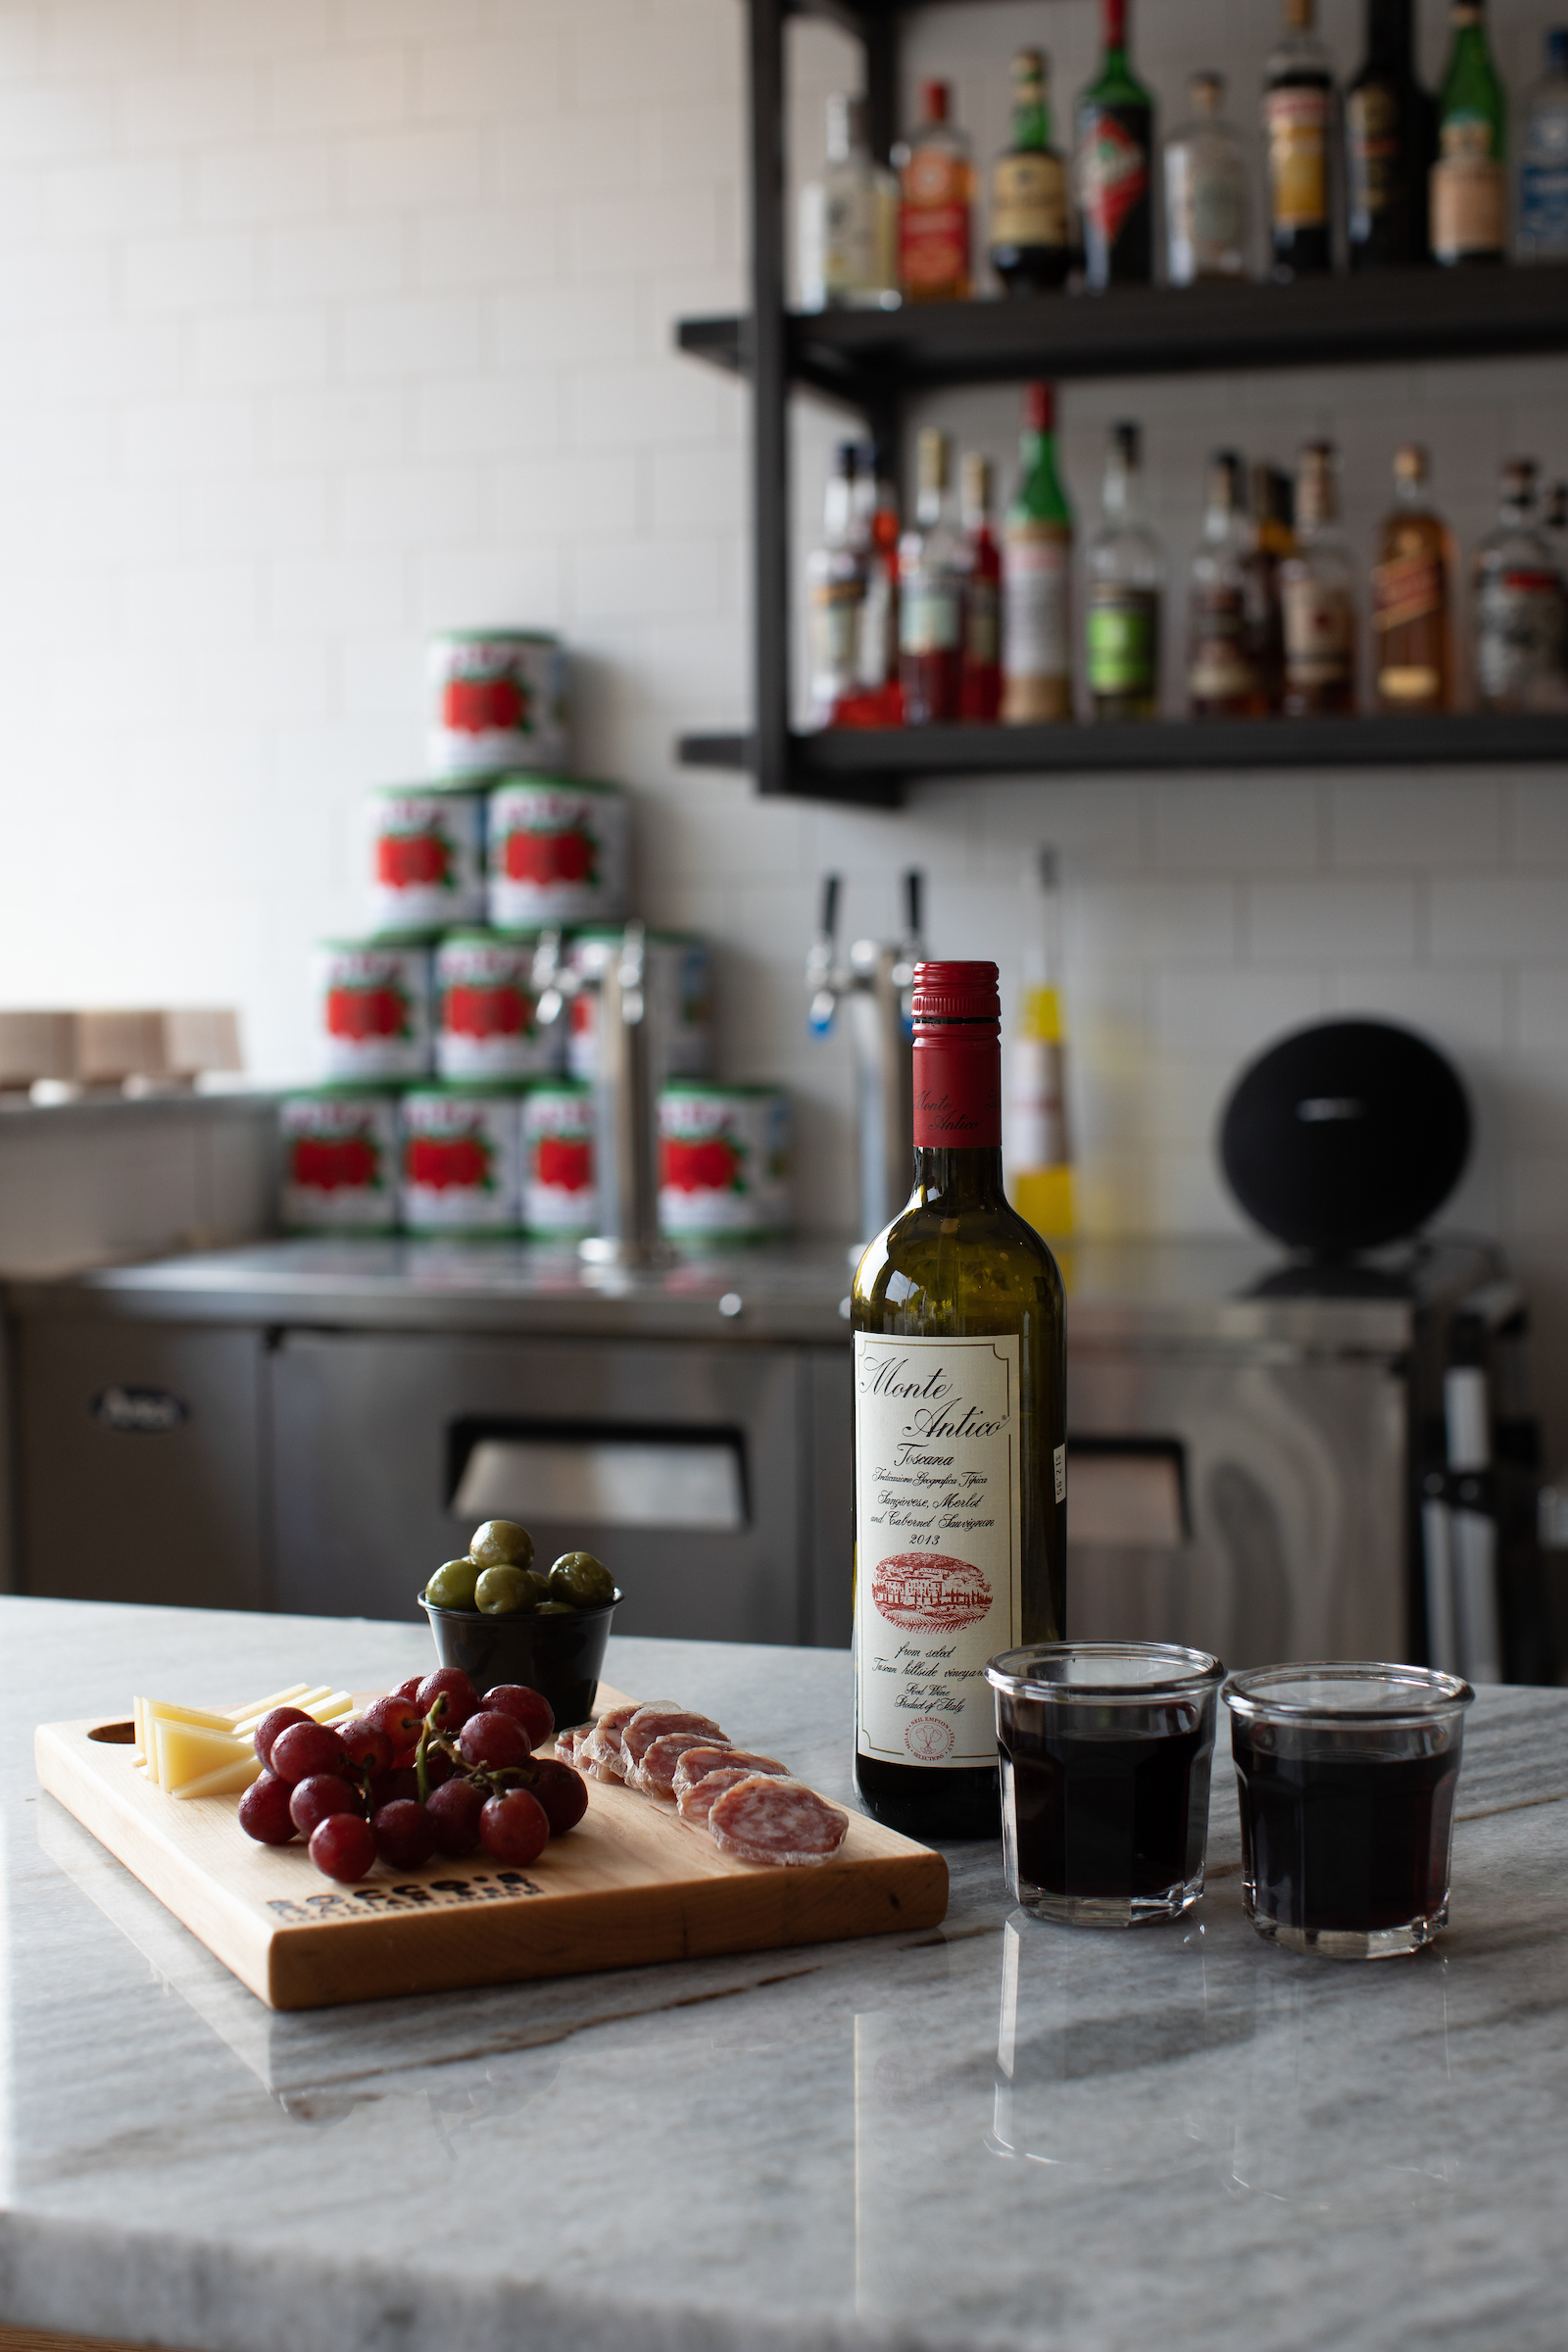 A bottle of wine, a charcuterie board, and two tumbler glasses filled with red wine.